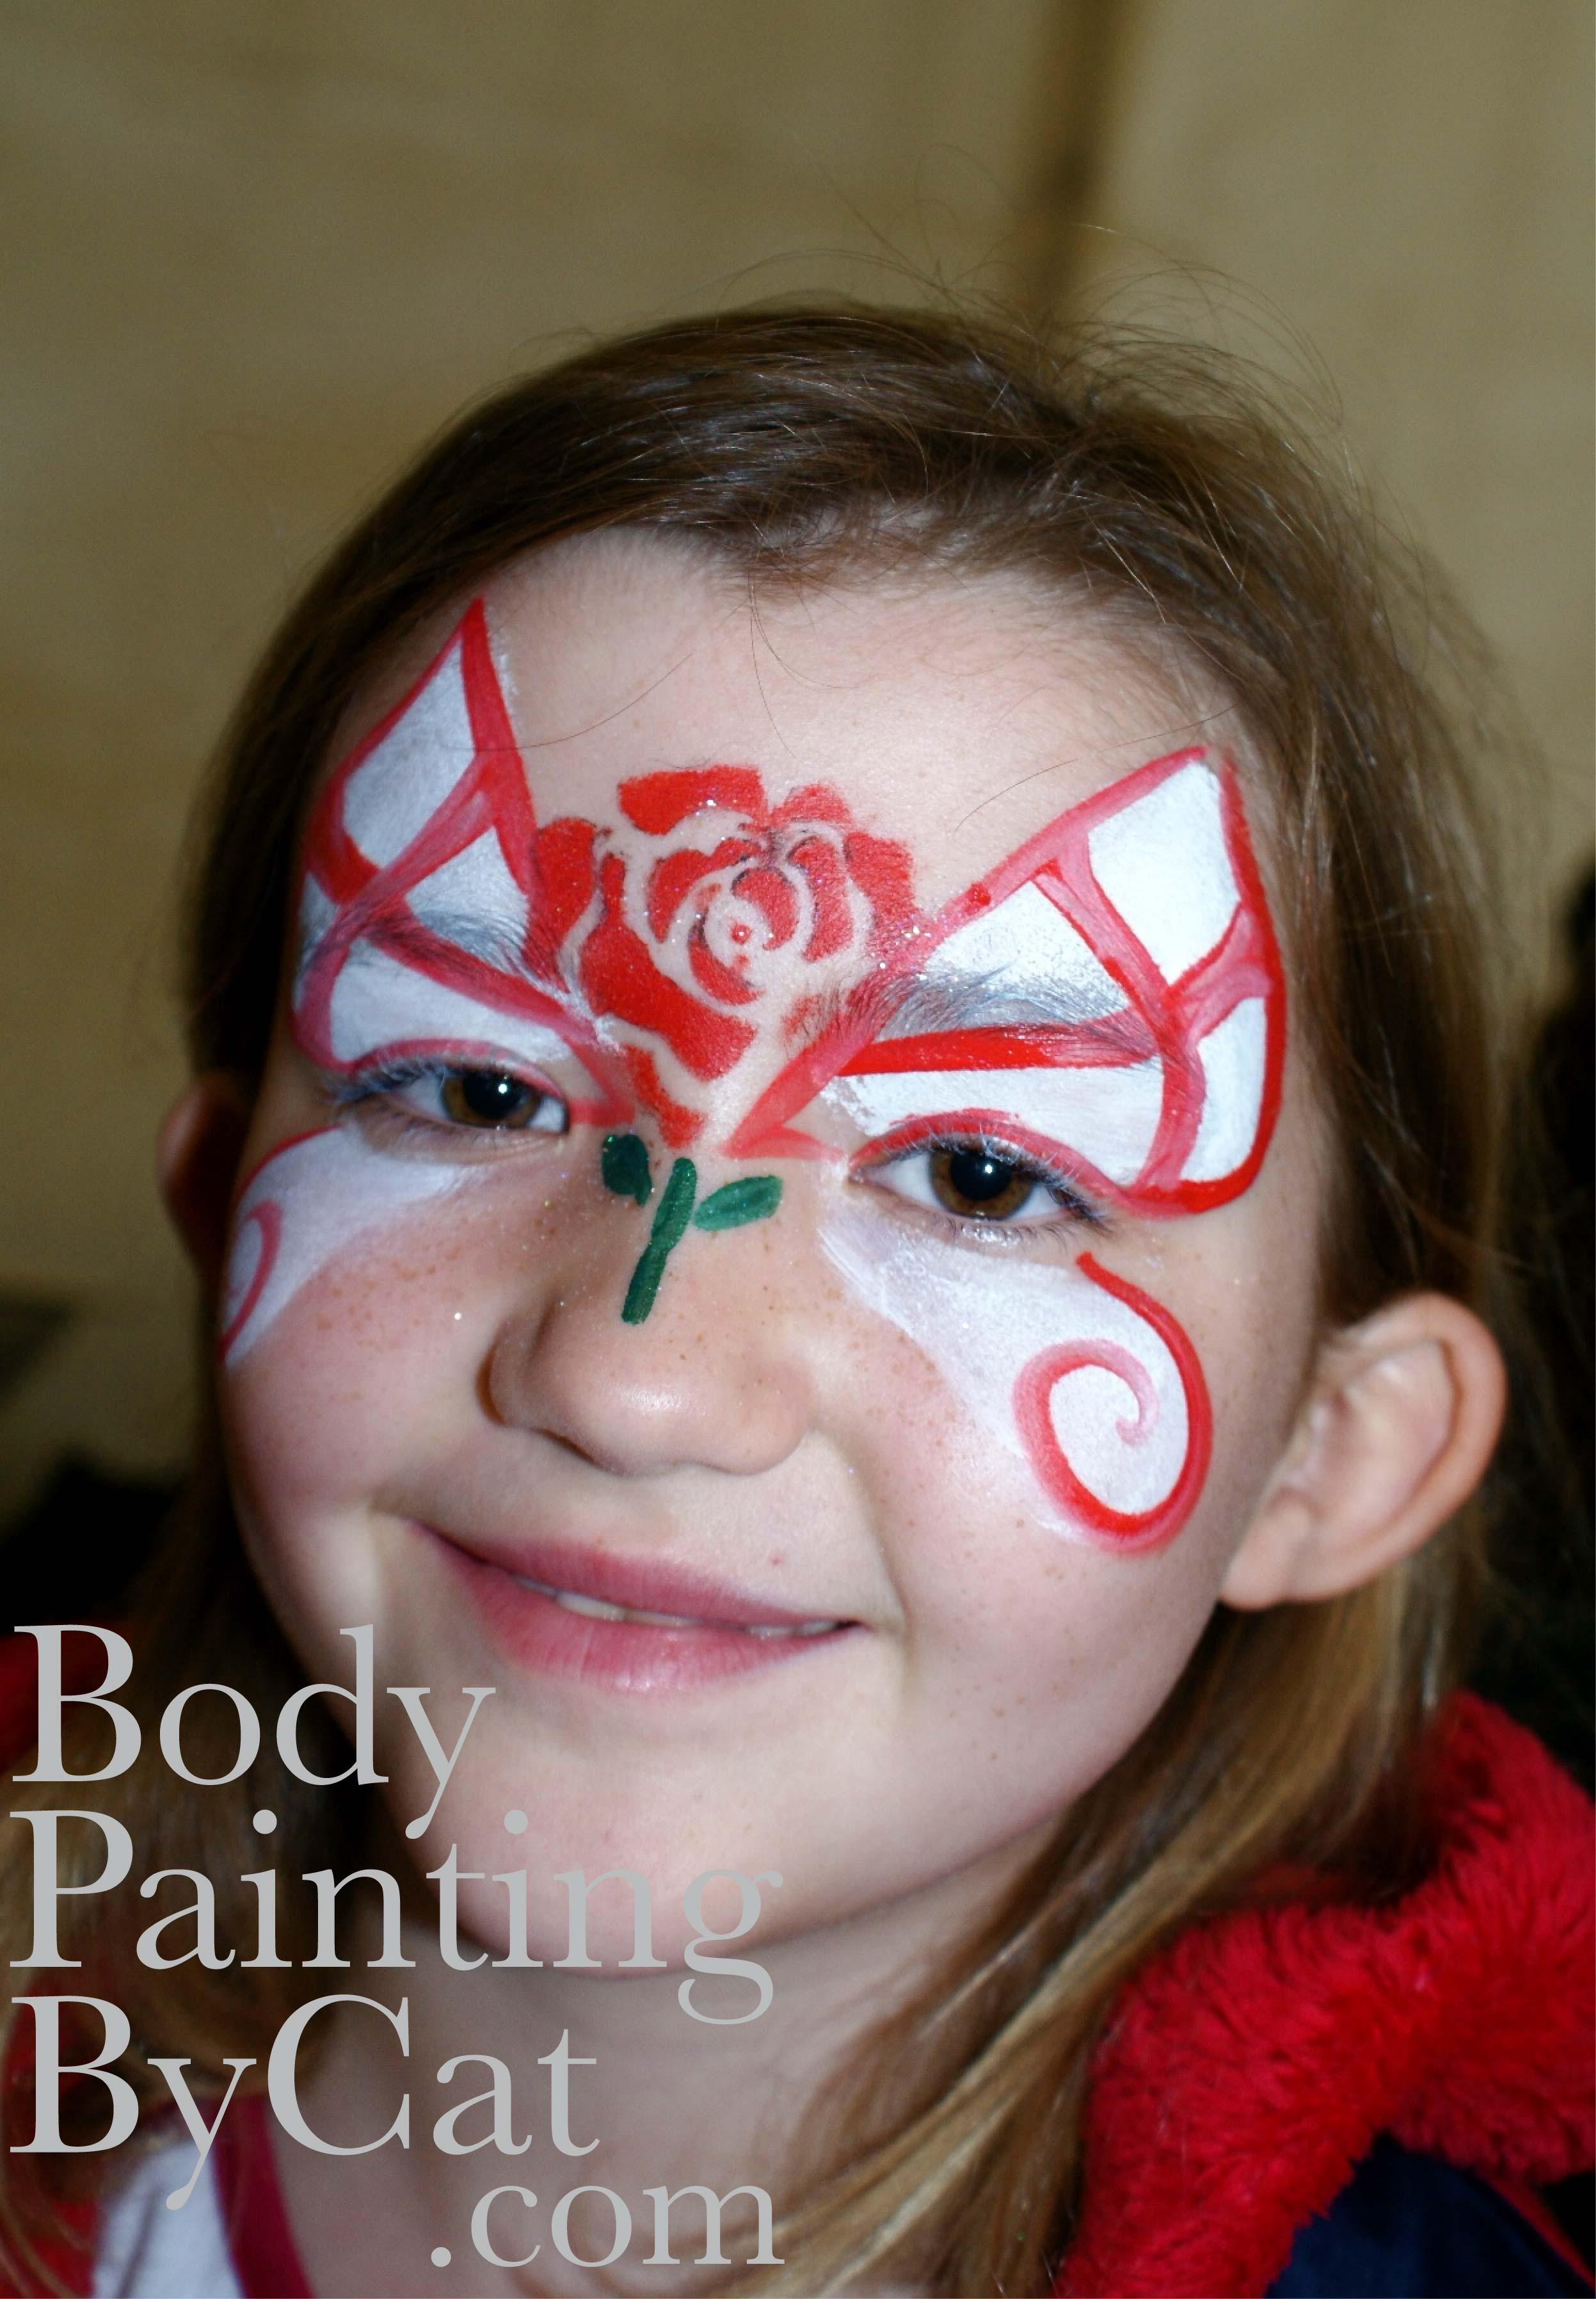 Events Sports Body Painting By Cat